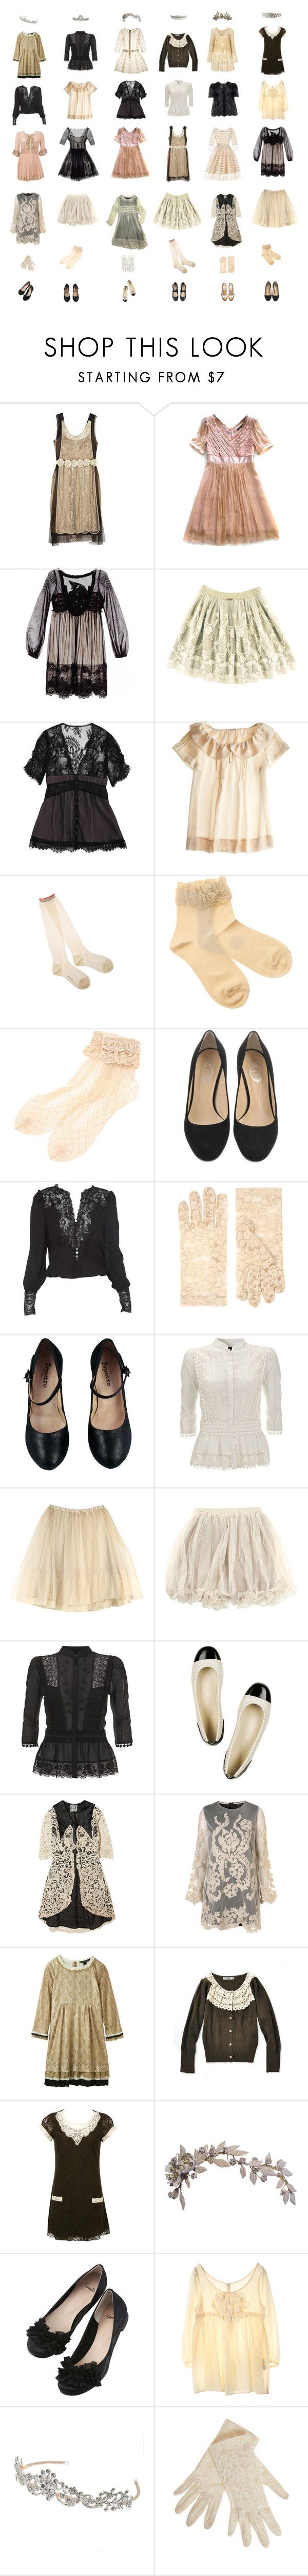 """""""Untitled"""" by zoella ❤ liked on Polyvore featuring Philosophy di Alberta Ferretti, Tracy Reese, Hoss Intropia, Calypso St. Barth, mintdesigns, United Arrows, Topshop, Haute Hippie, ASOS and Repetto"""